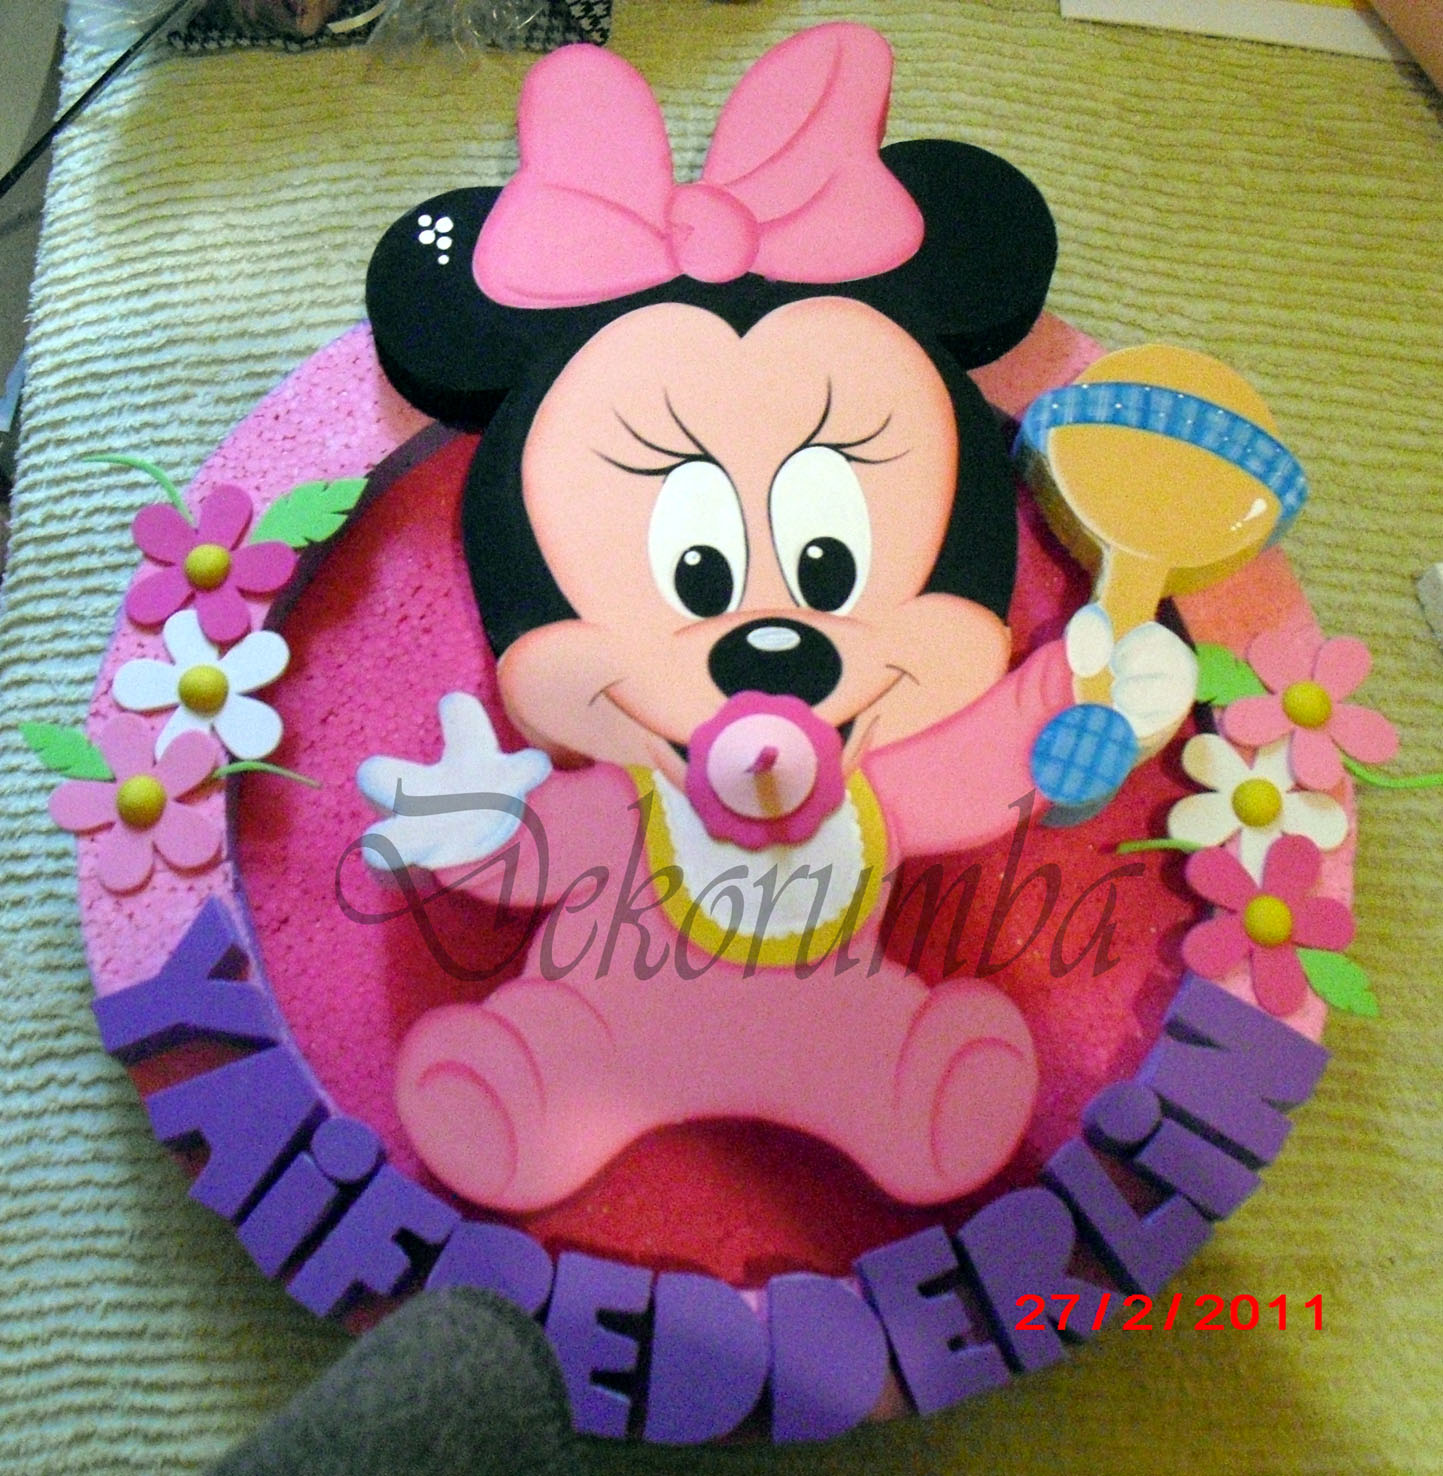 Minnie Mouse baby chupetera - Imagui